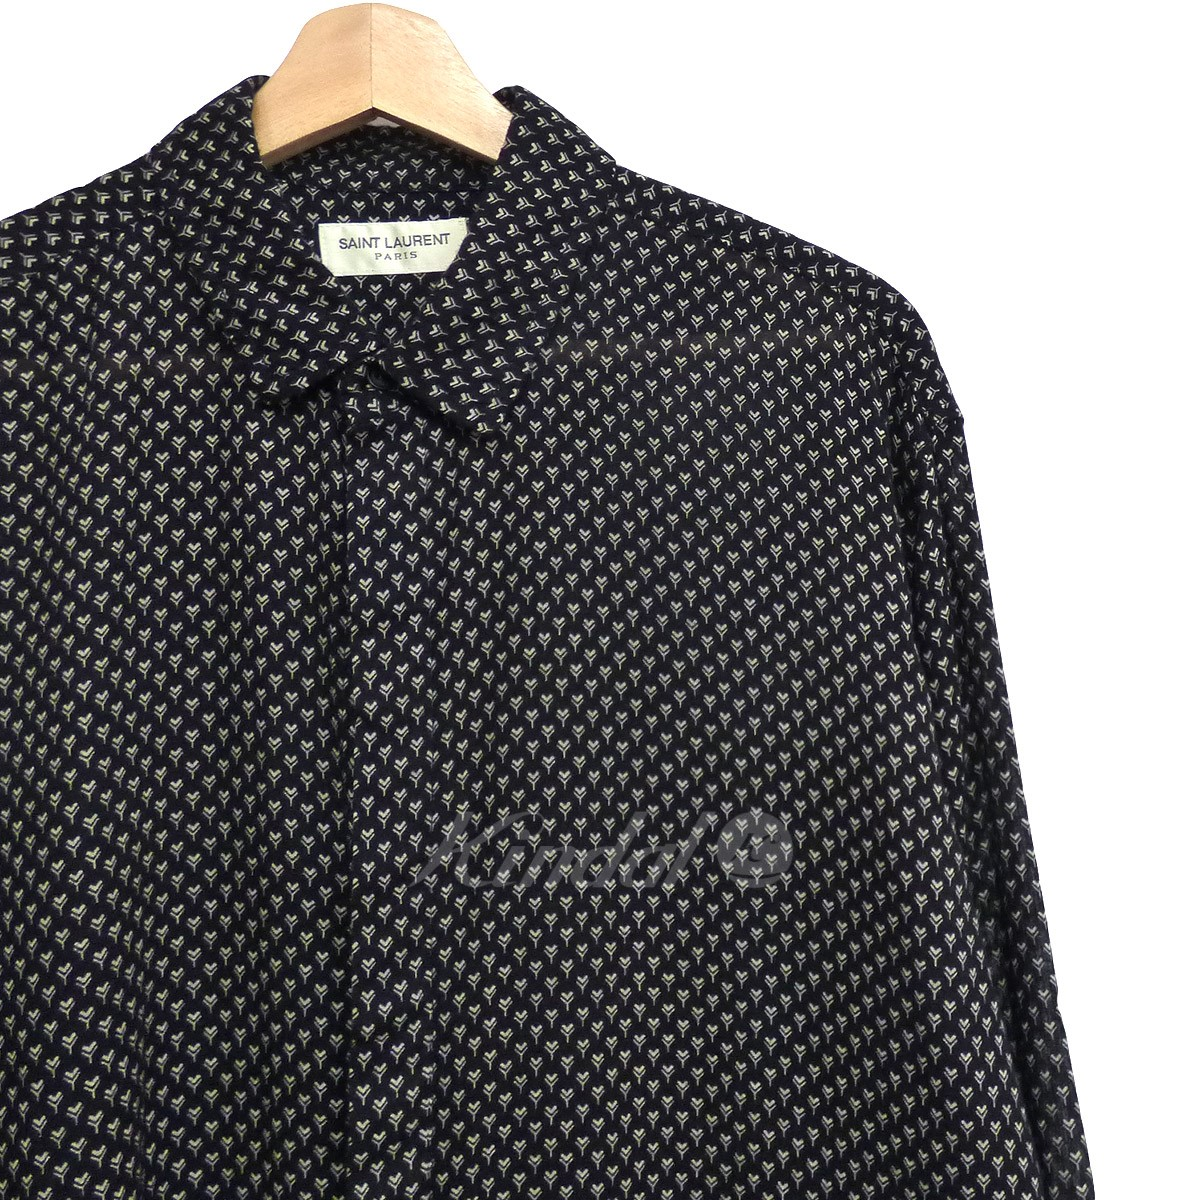 【中古】SAINT LAURENT PARIS 17SS Printed Cotton Shirtオーバーサイズ比翼シャツ 【送料無料】 【002584】 【KIND1641】